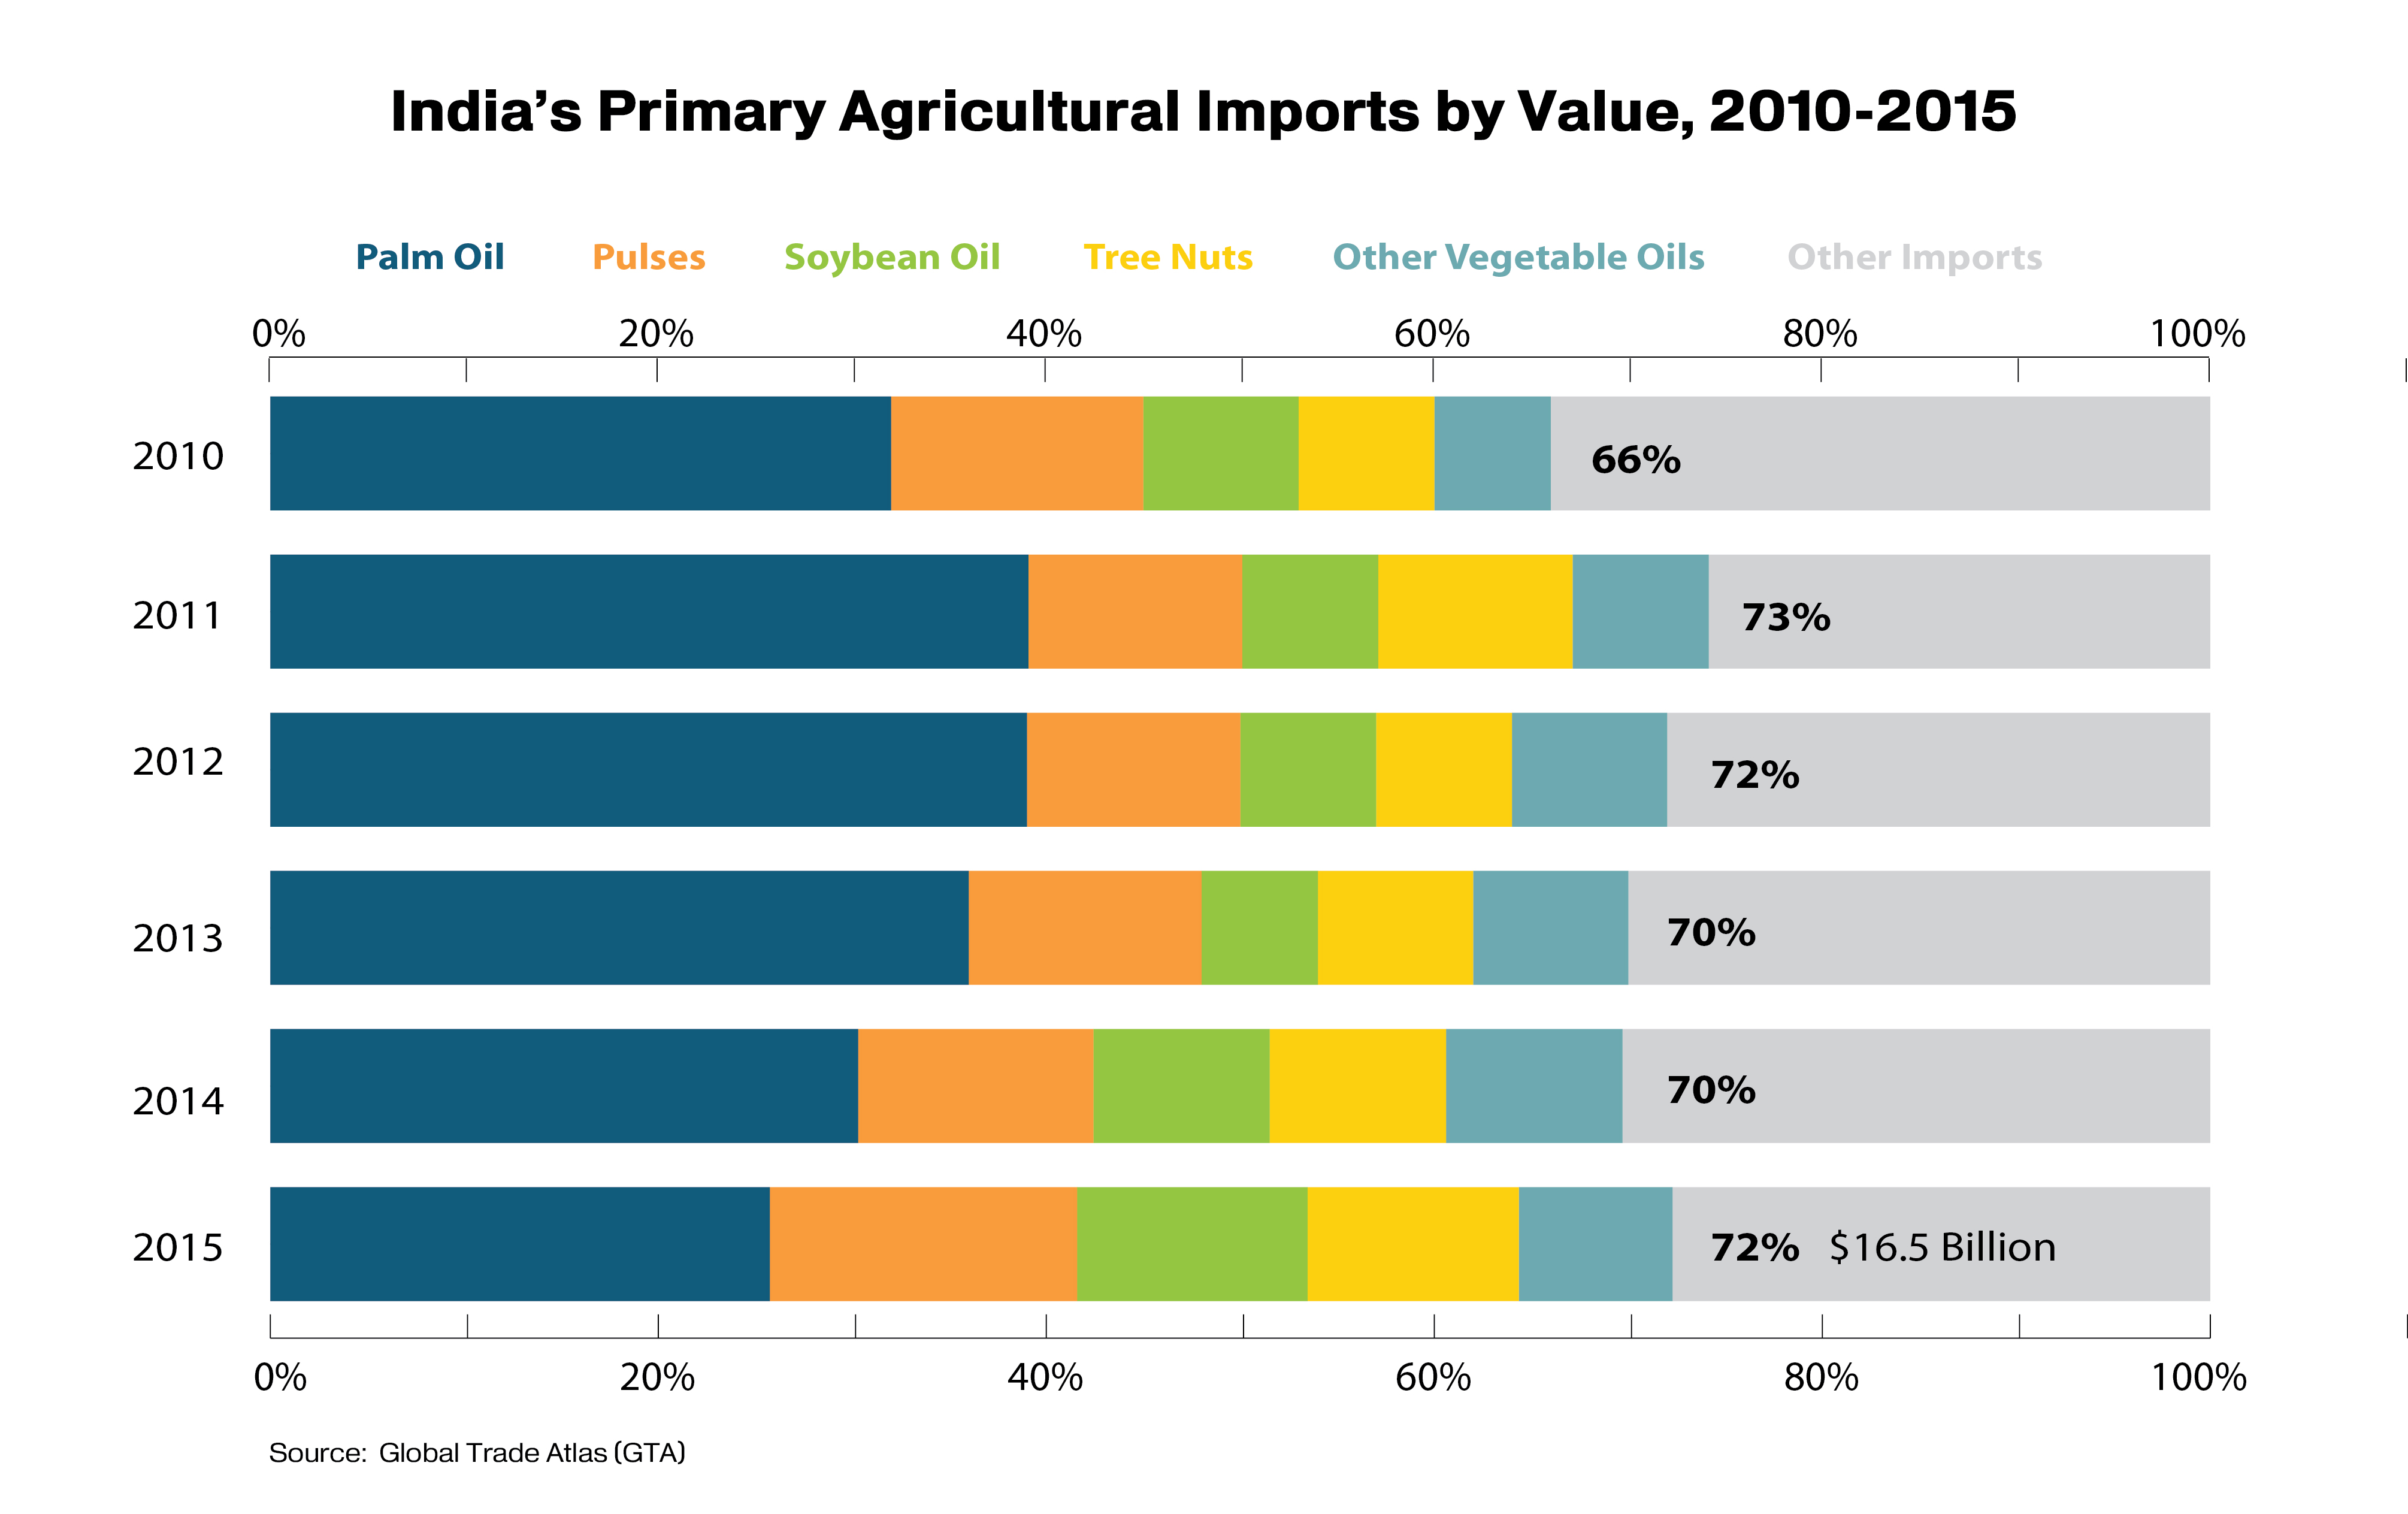 Par chart showing that the majority of India's agricultural imports come from 5 commodities: palm oil, pulses, soybean oil, tree nuts and other vegetables. These accounted for 72% of imports in 2015.